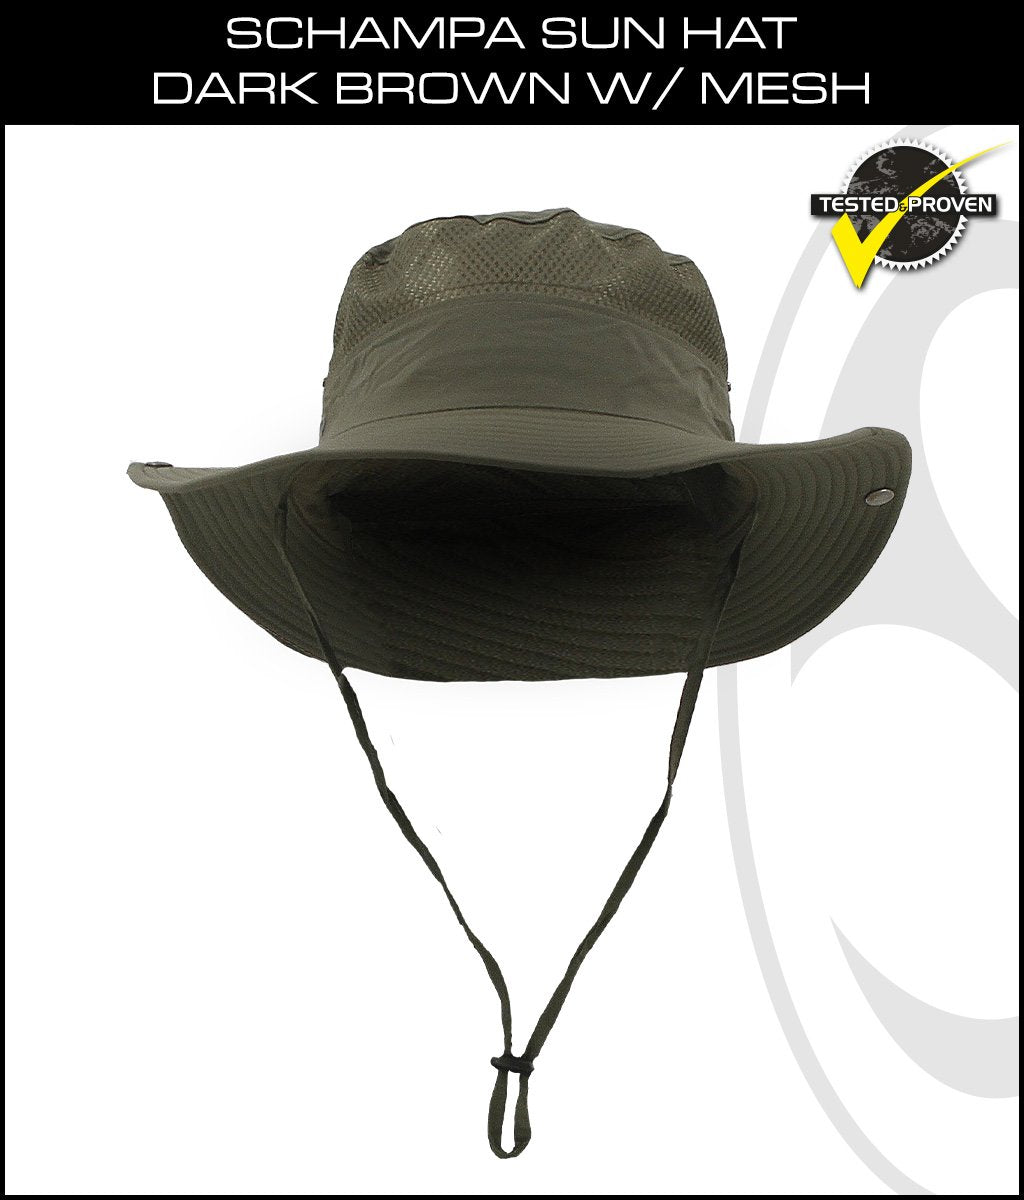 SCHAMPA Sun Hat - Dark Brown w/ Mesh